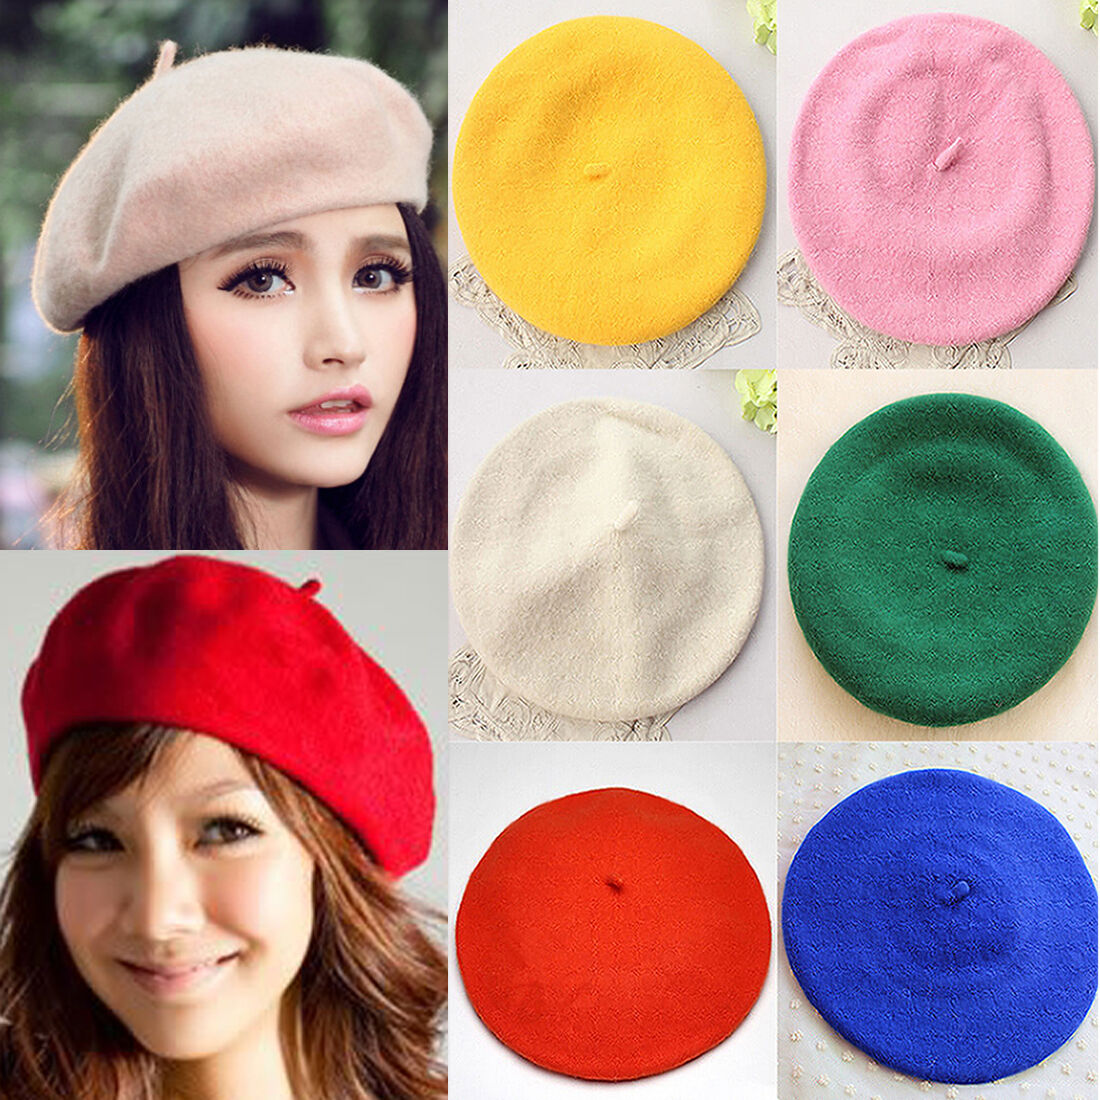 Fashion Women/'s Warm Winter Cashmere Wool Beret Military Army Hat//cap Beret Hats